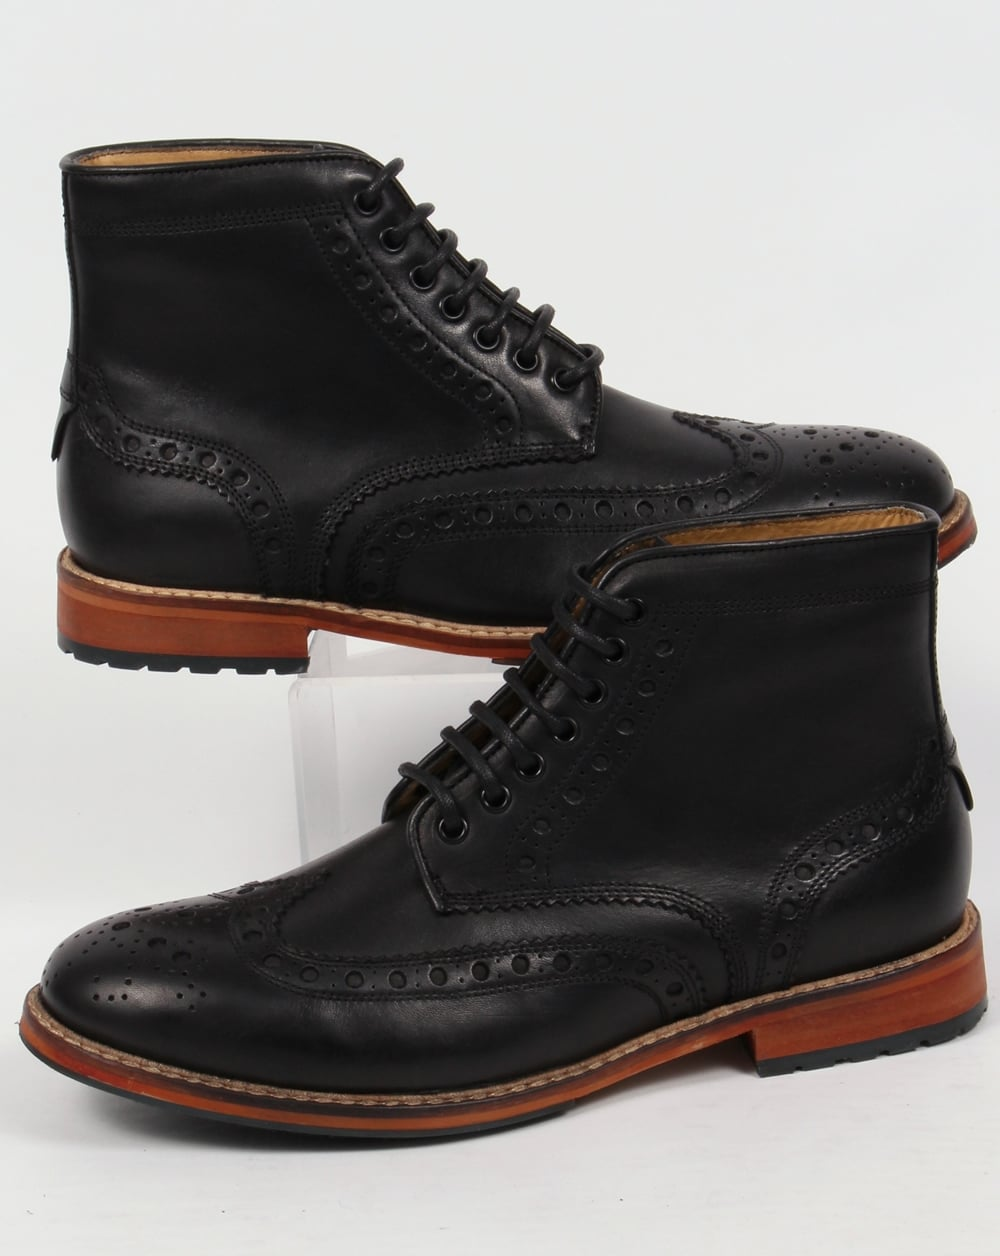 lyle and scott deveron brogue boots black leather premium mens. Black Bedroom Furniture Sets. Home Design Ideas